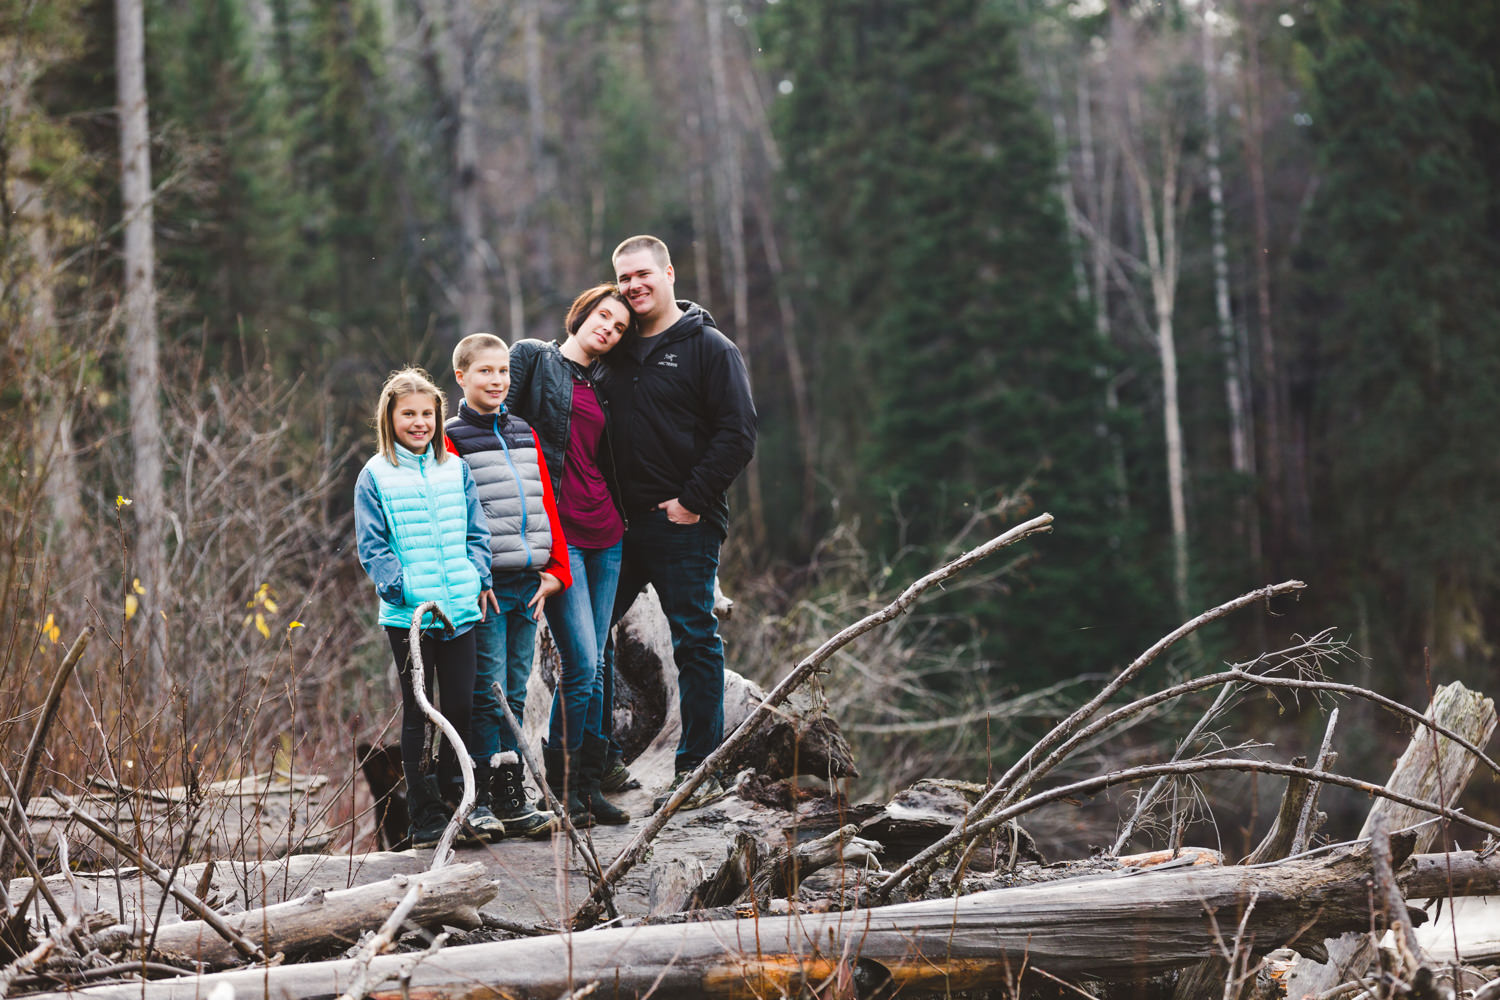 quesnel-family-photographers-quesnel-family-photography-cotton-wood-river-quesnel-bc-kelowna-photographer-julie-dorge (18 of 48).jpg